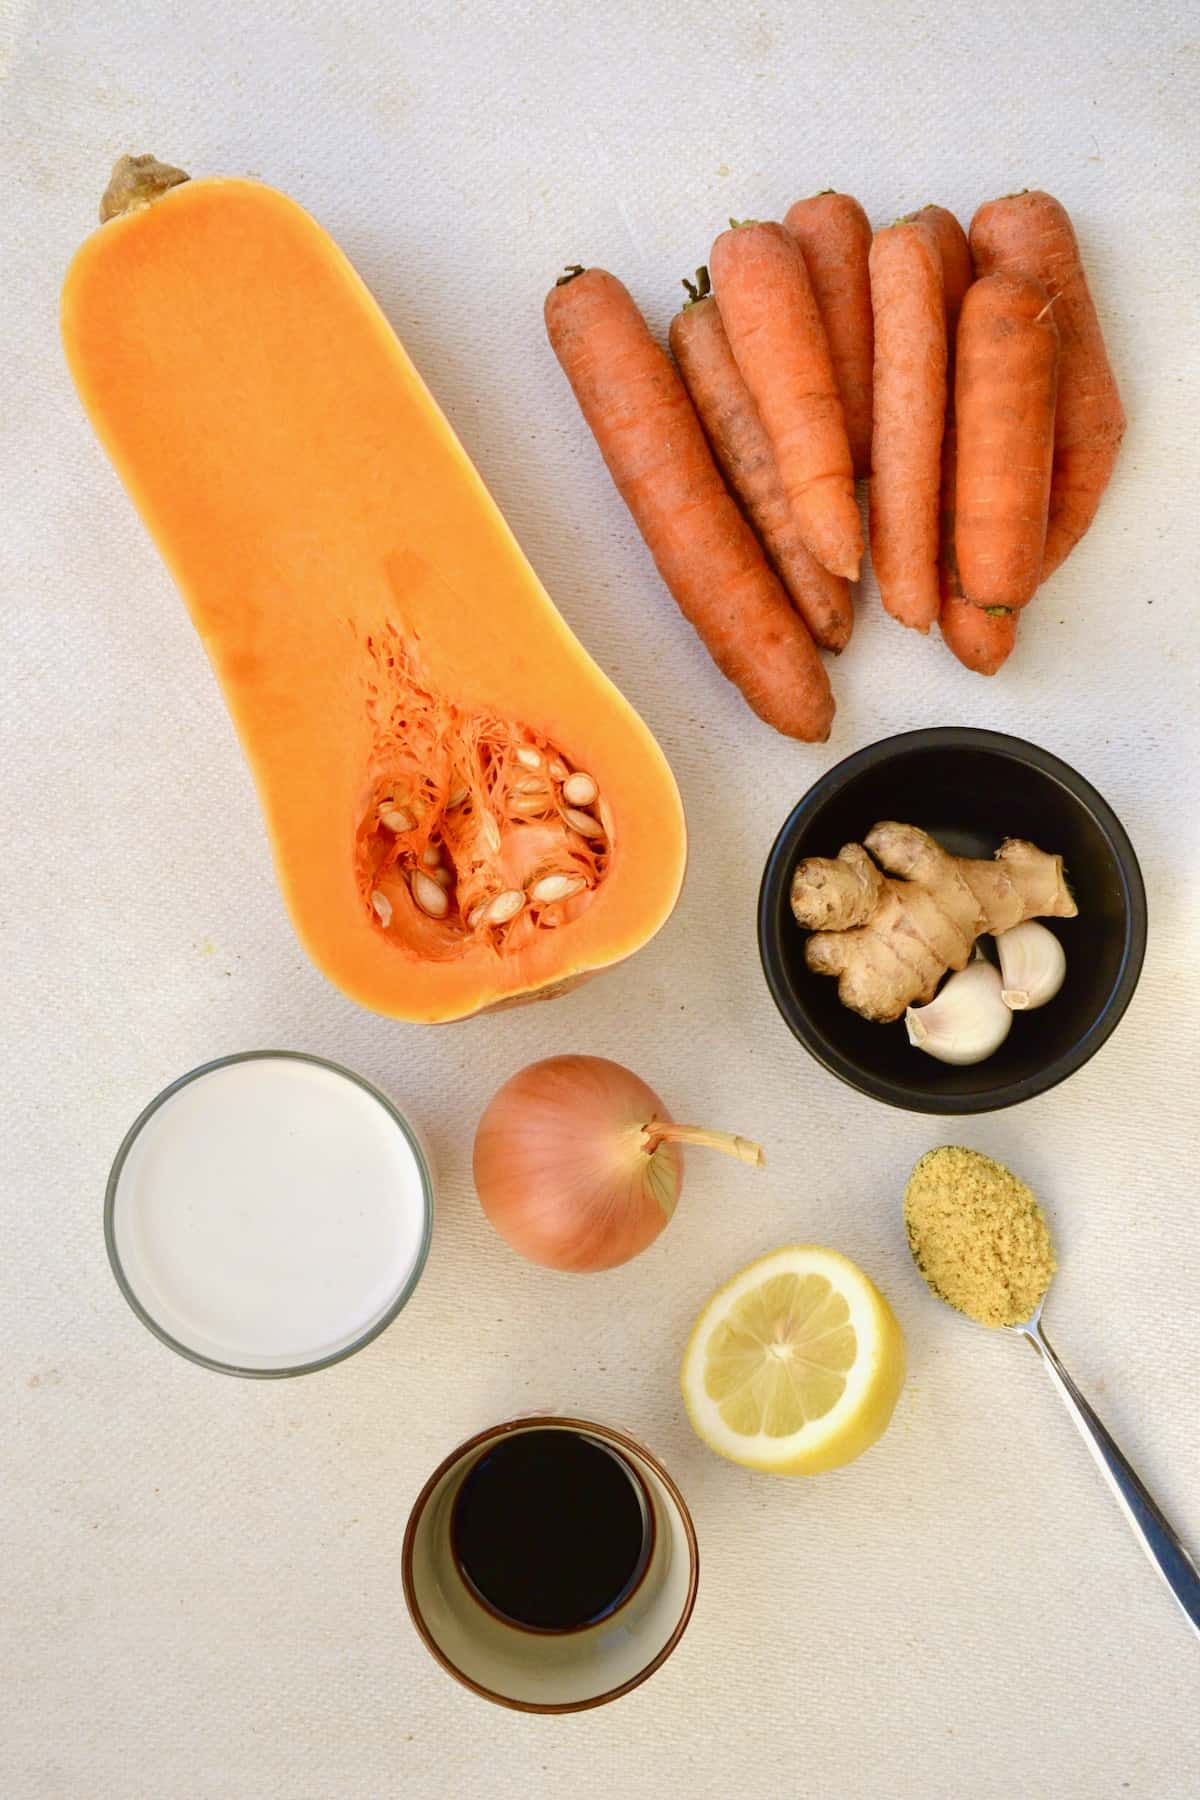 Soup ingredients - a half butternut squash, some carrots, ginger and garlic in a dish, coconut milk, soy sauce, an onion, half a lemon and a spoonful of stock powder.